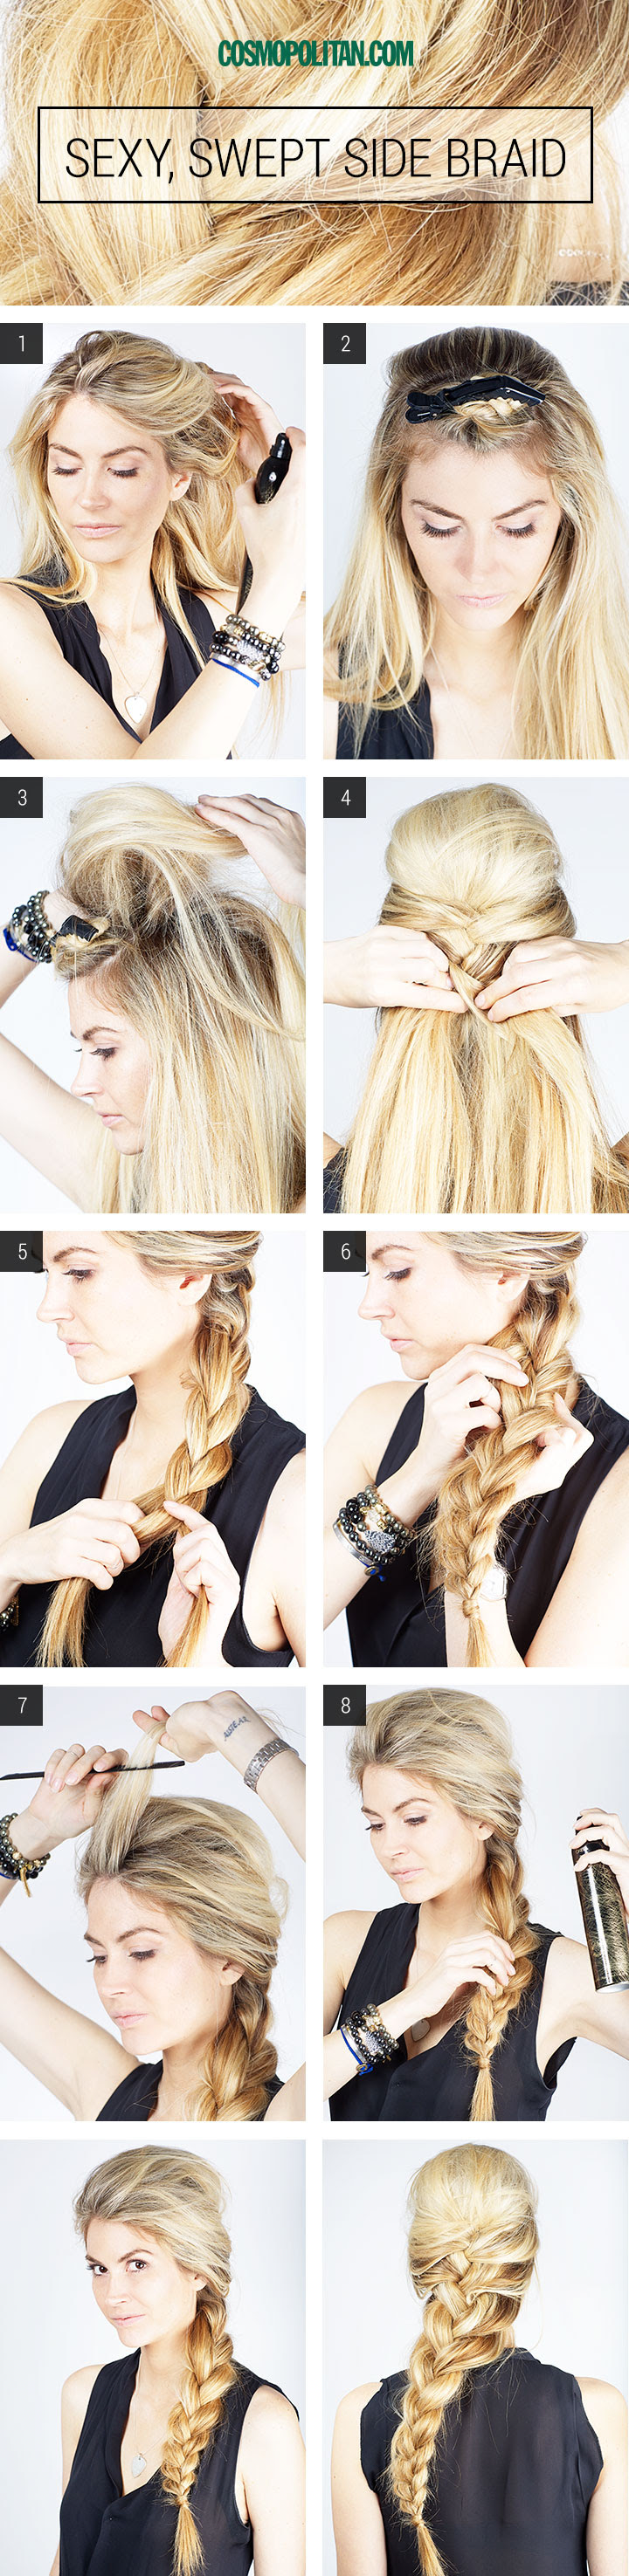 Hair Tutorials: 15 Simple Easy Hairstyles You Should Not ...